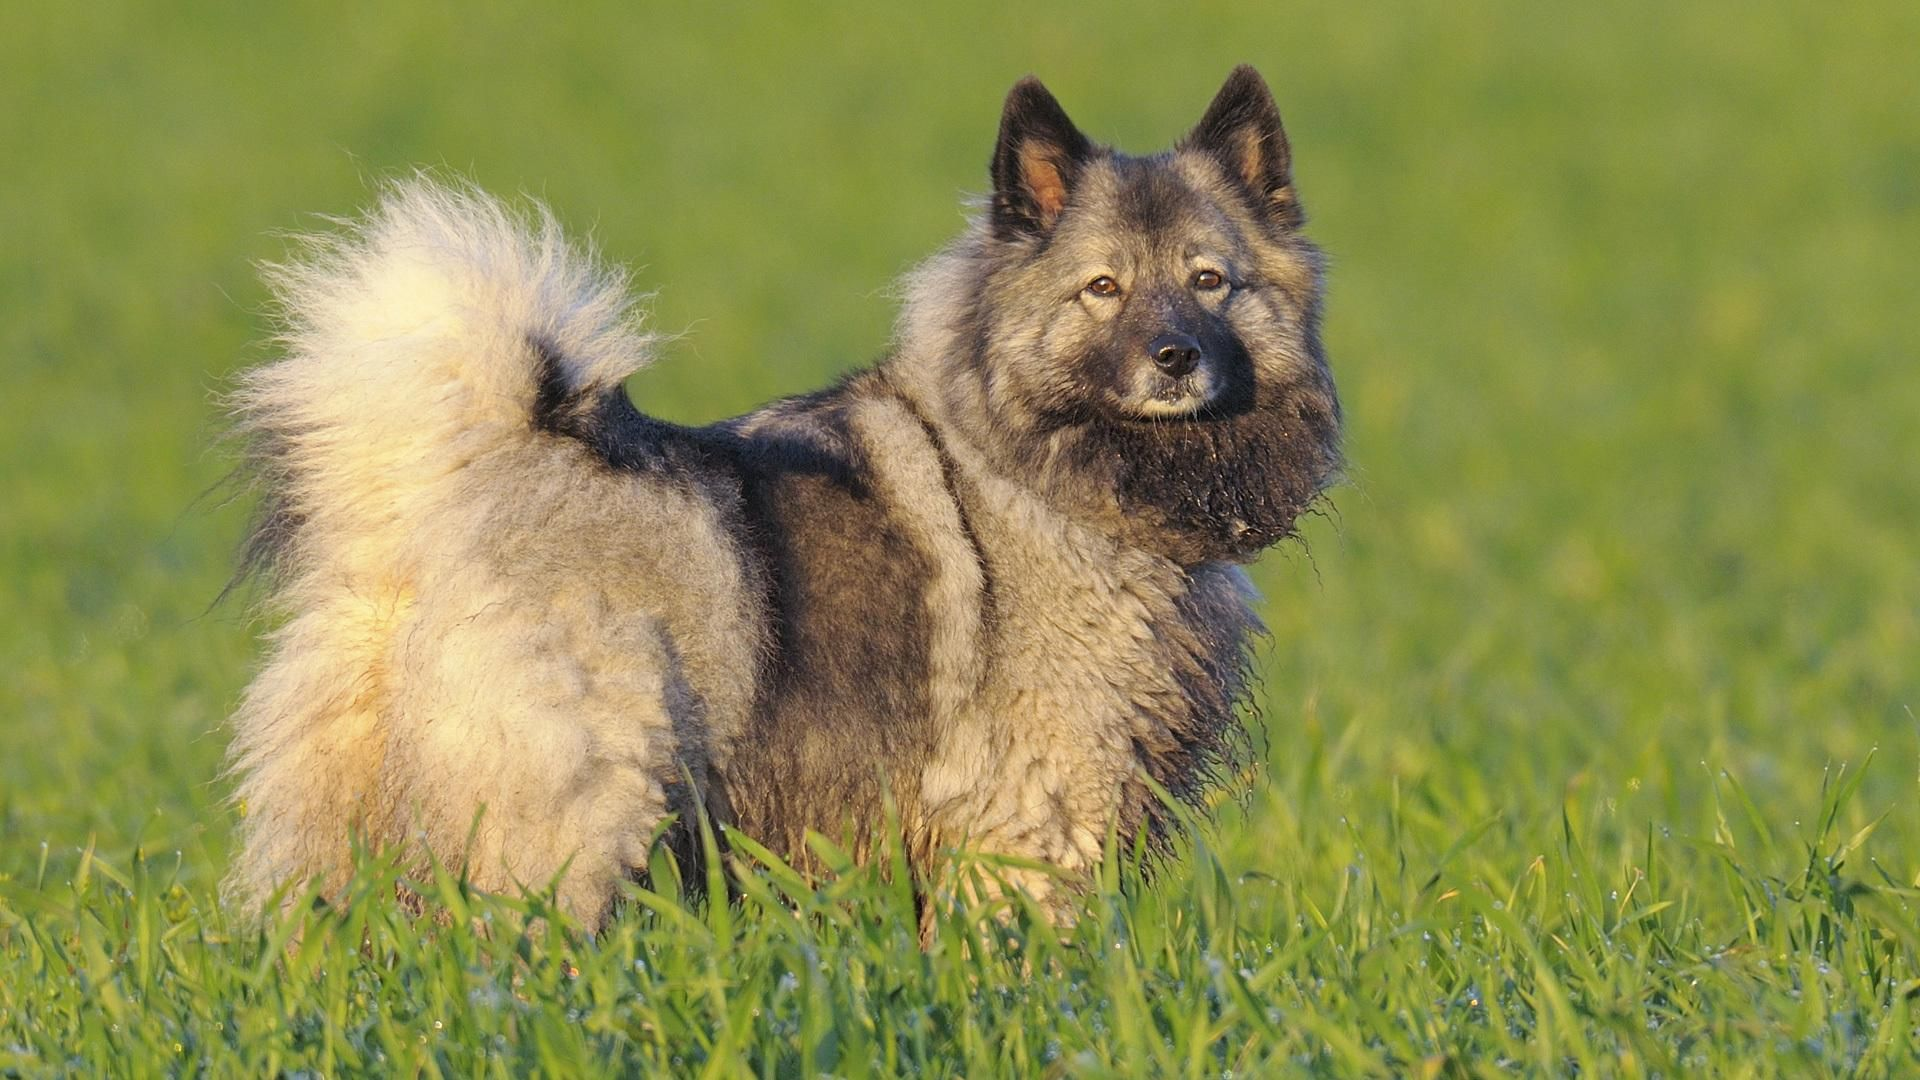 The Keeshond